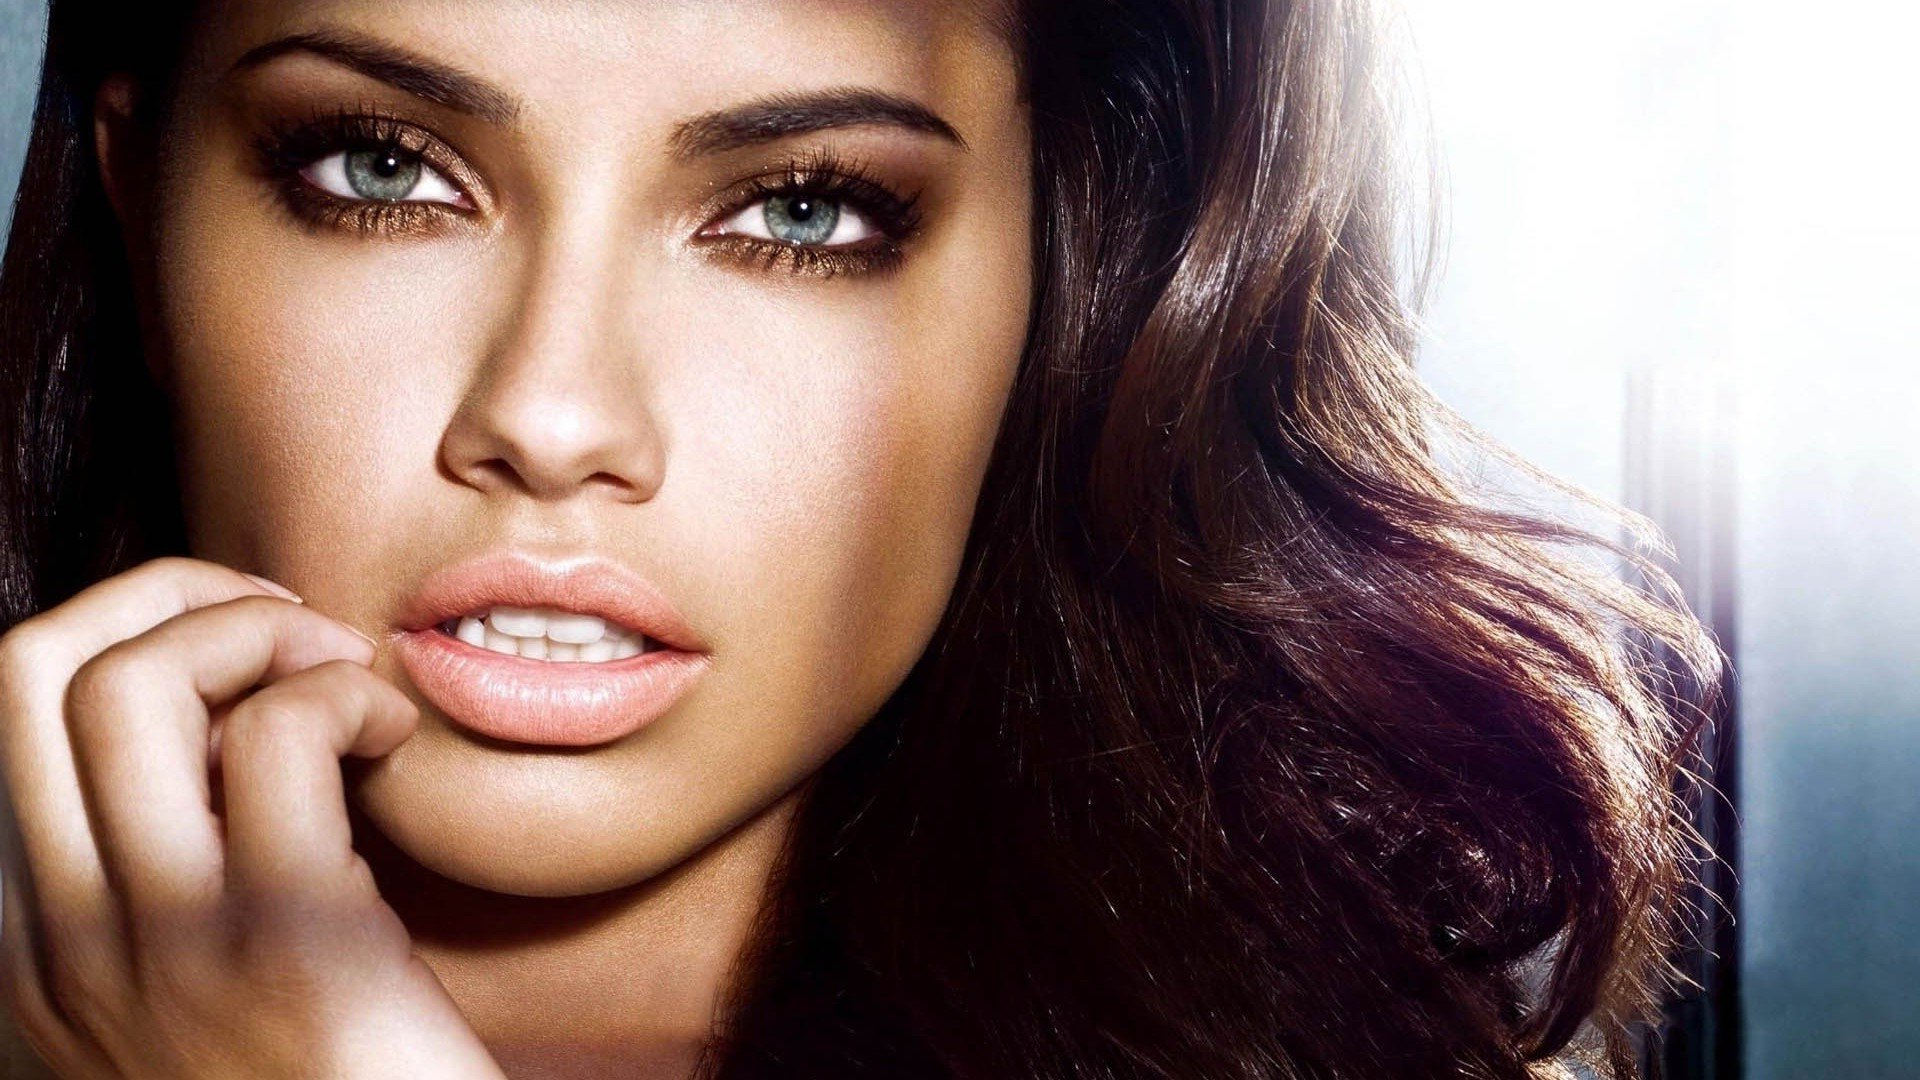 Adriana lima face desktop wallpaper 51769 1920x1080 px adriana lima face desktop wallpaper 51769 voltagebd Images